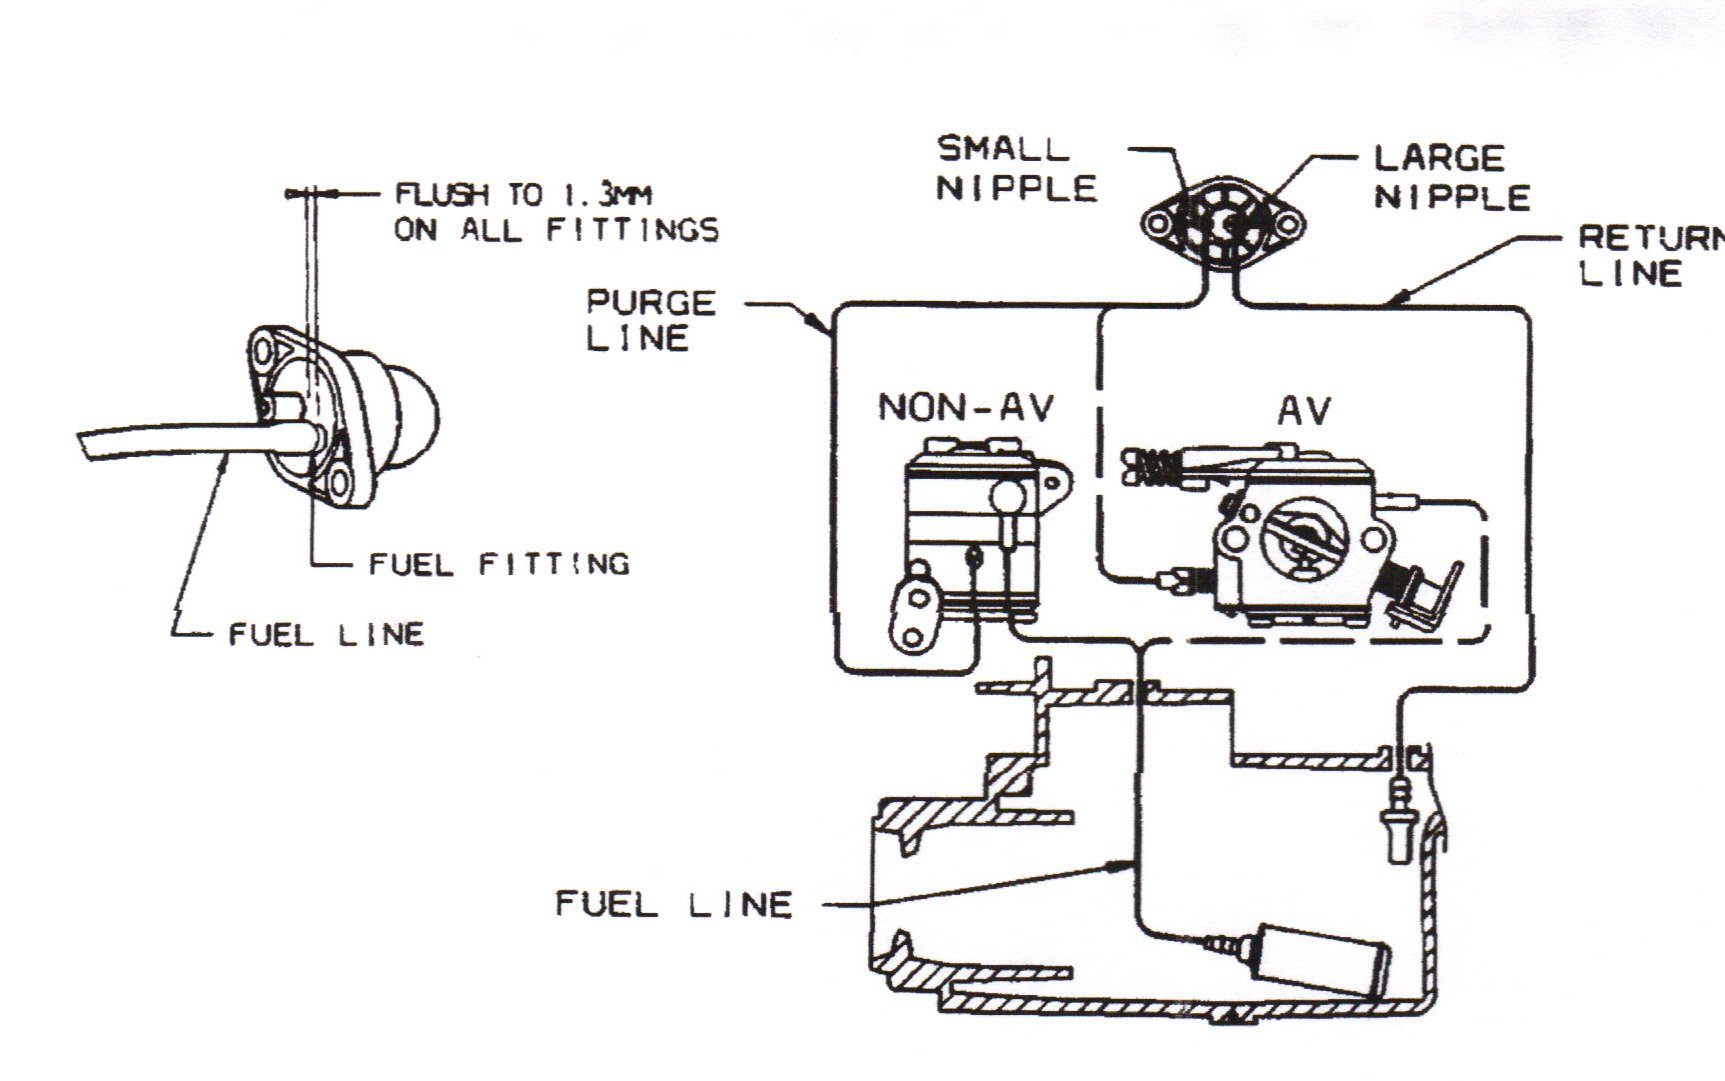 Need A Fuel Line Diagram For A Eater Bc2400  Thanks  Dan